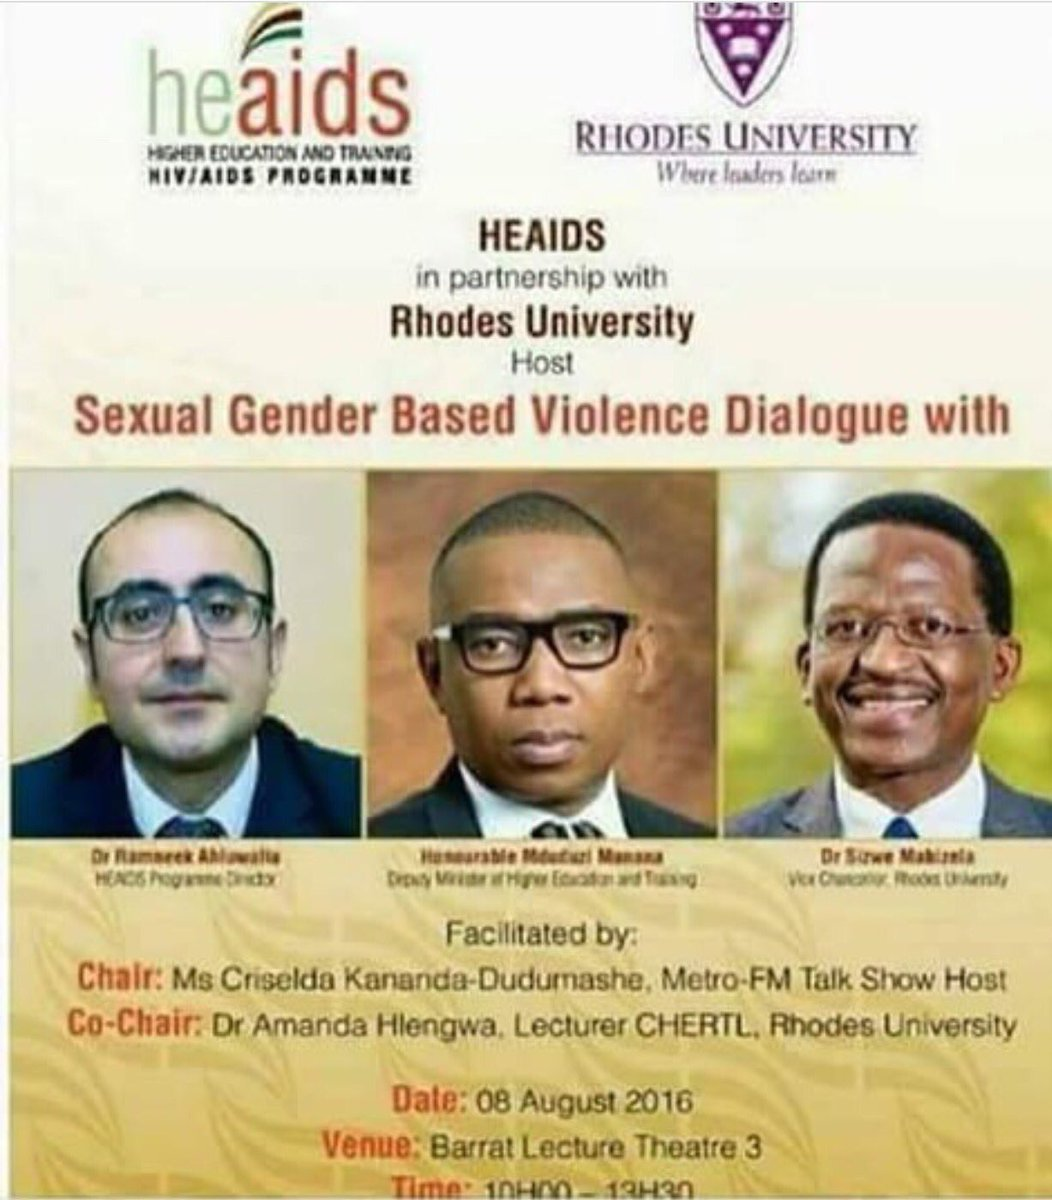 Boys and girls PLEASE LOOK AT THIS! Look who's hosting a talk against violence against women! LOOK CAREFULLY https://t.co/AcmvujcVcL